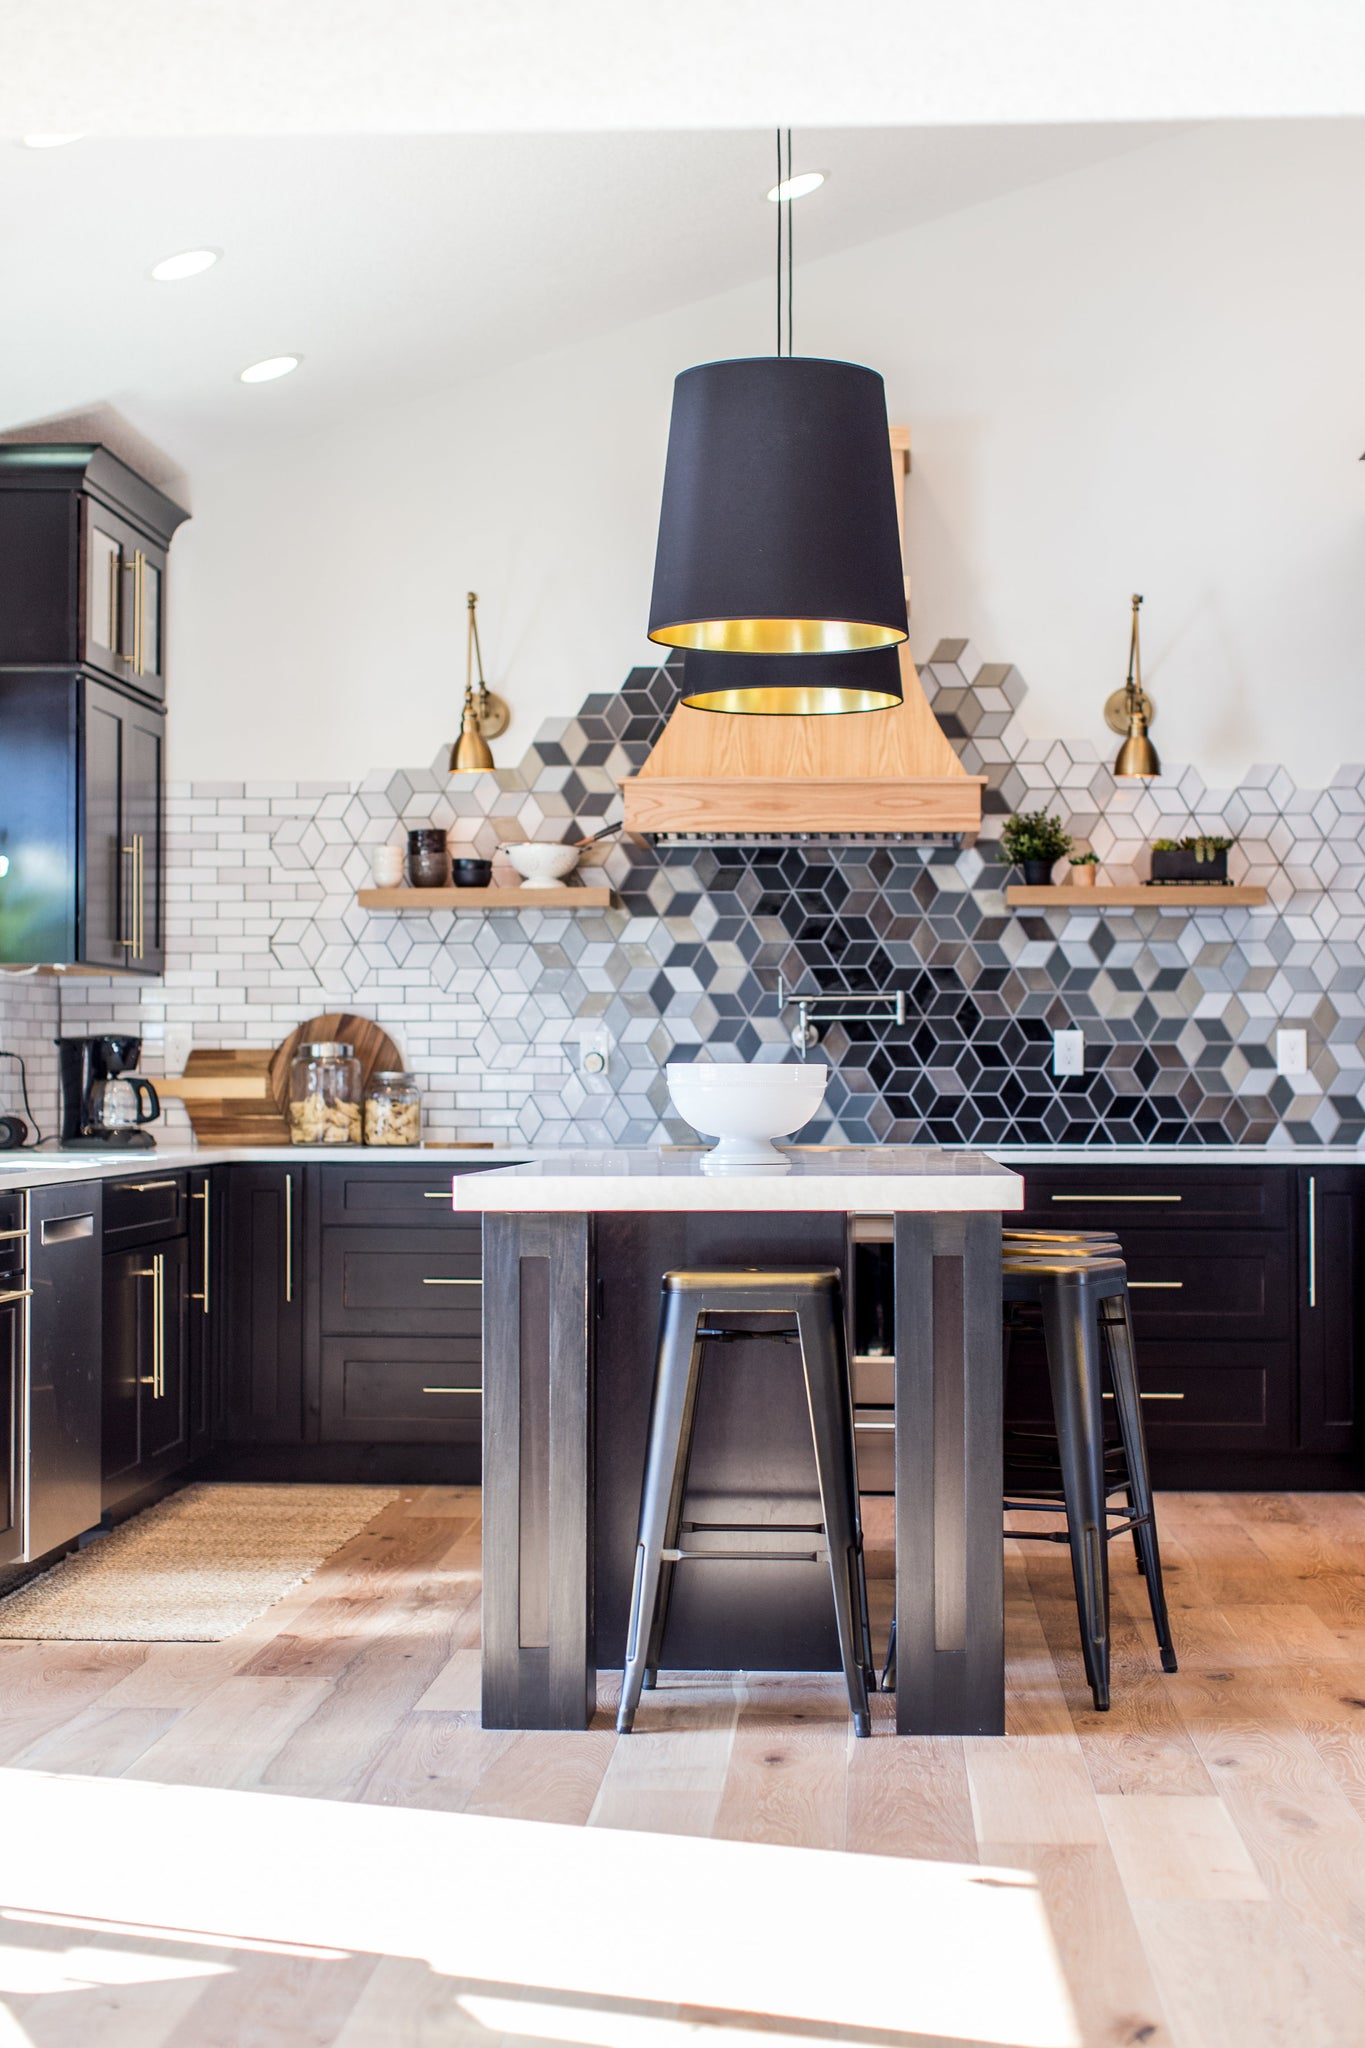 - How Much Will Your Ceramic Mosaic Tile Backsplash Cost? – Mercury